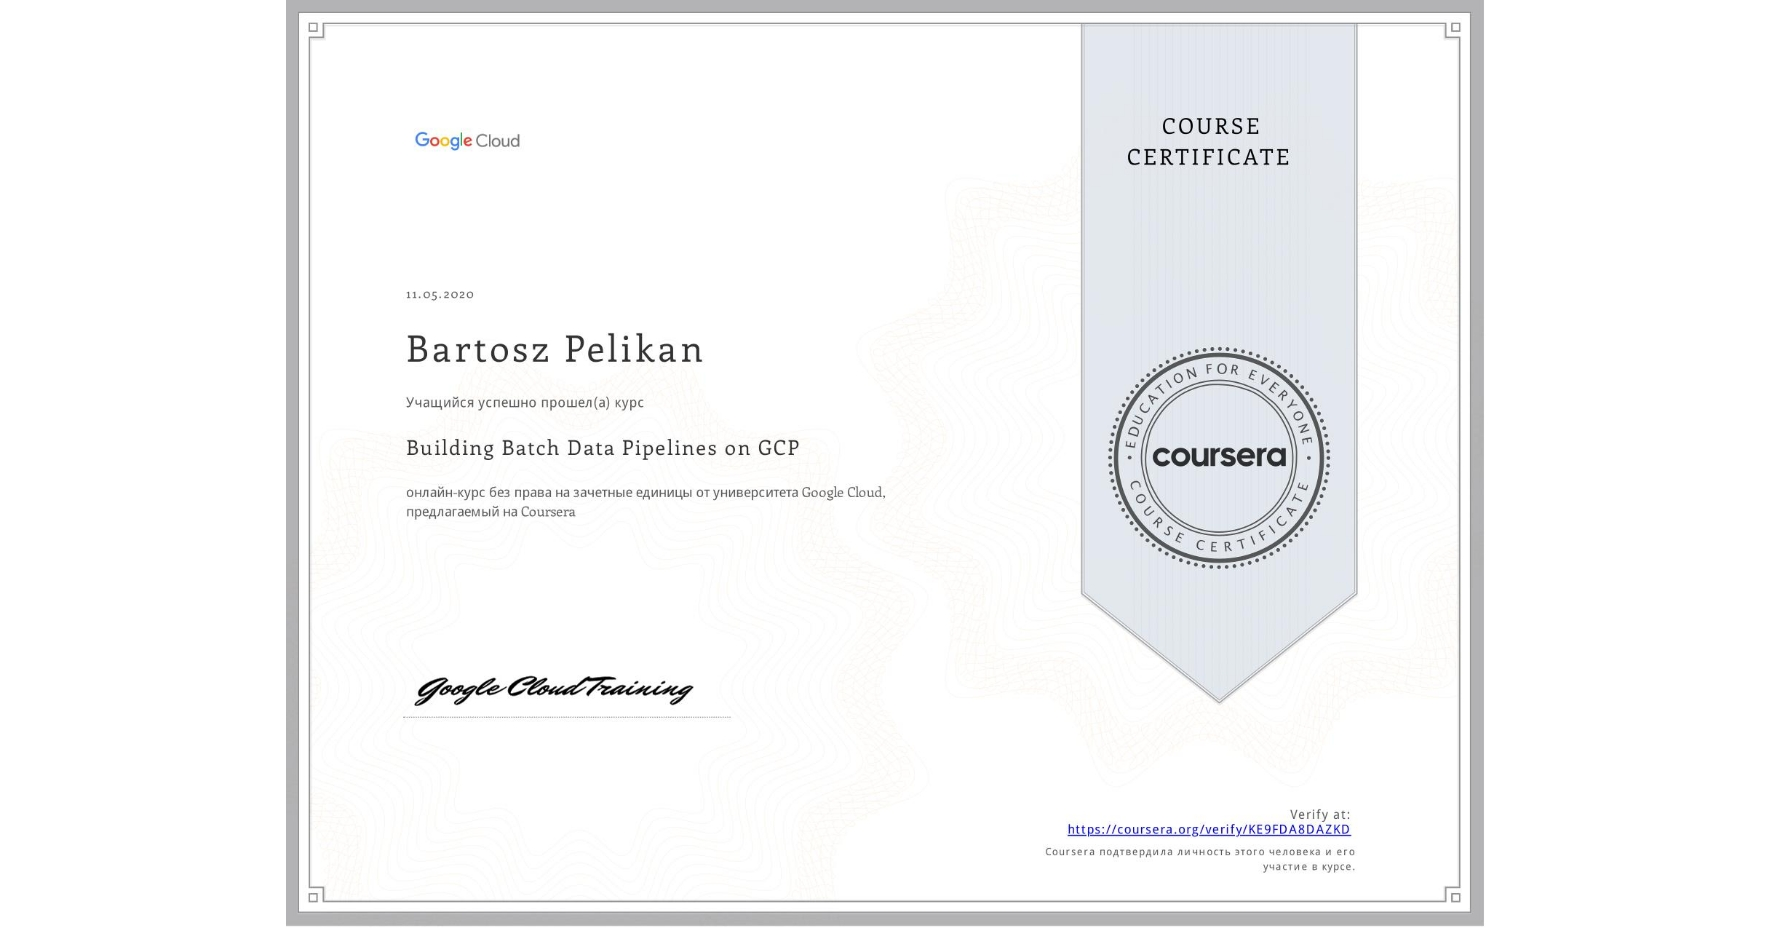 View certificate for Bartosz Pelikan, Building Batch Data Pipelines on GCP, an online non-credit course authorized by Google Cloud and offered through Coursera